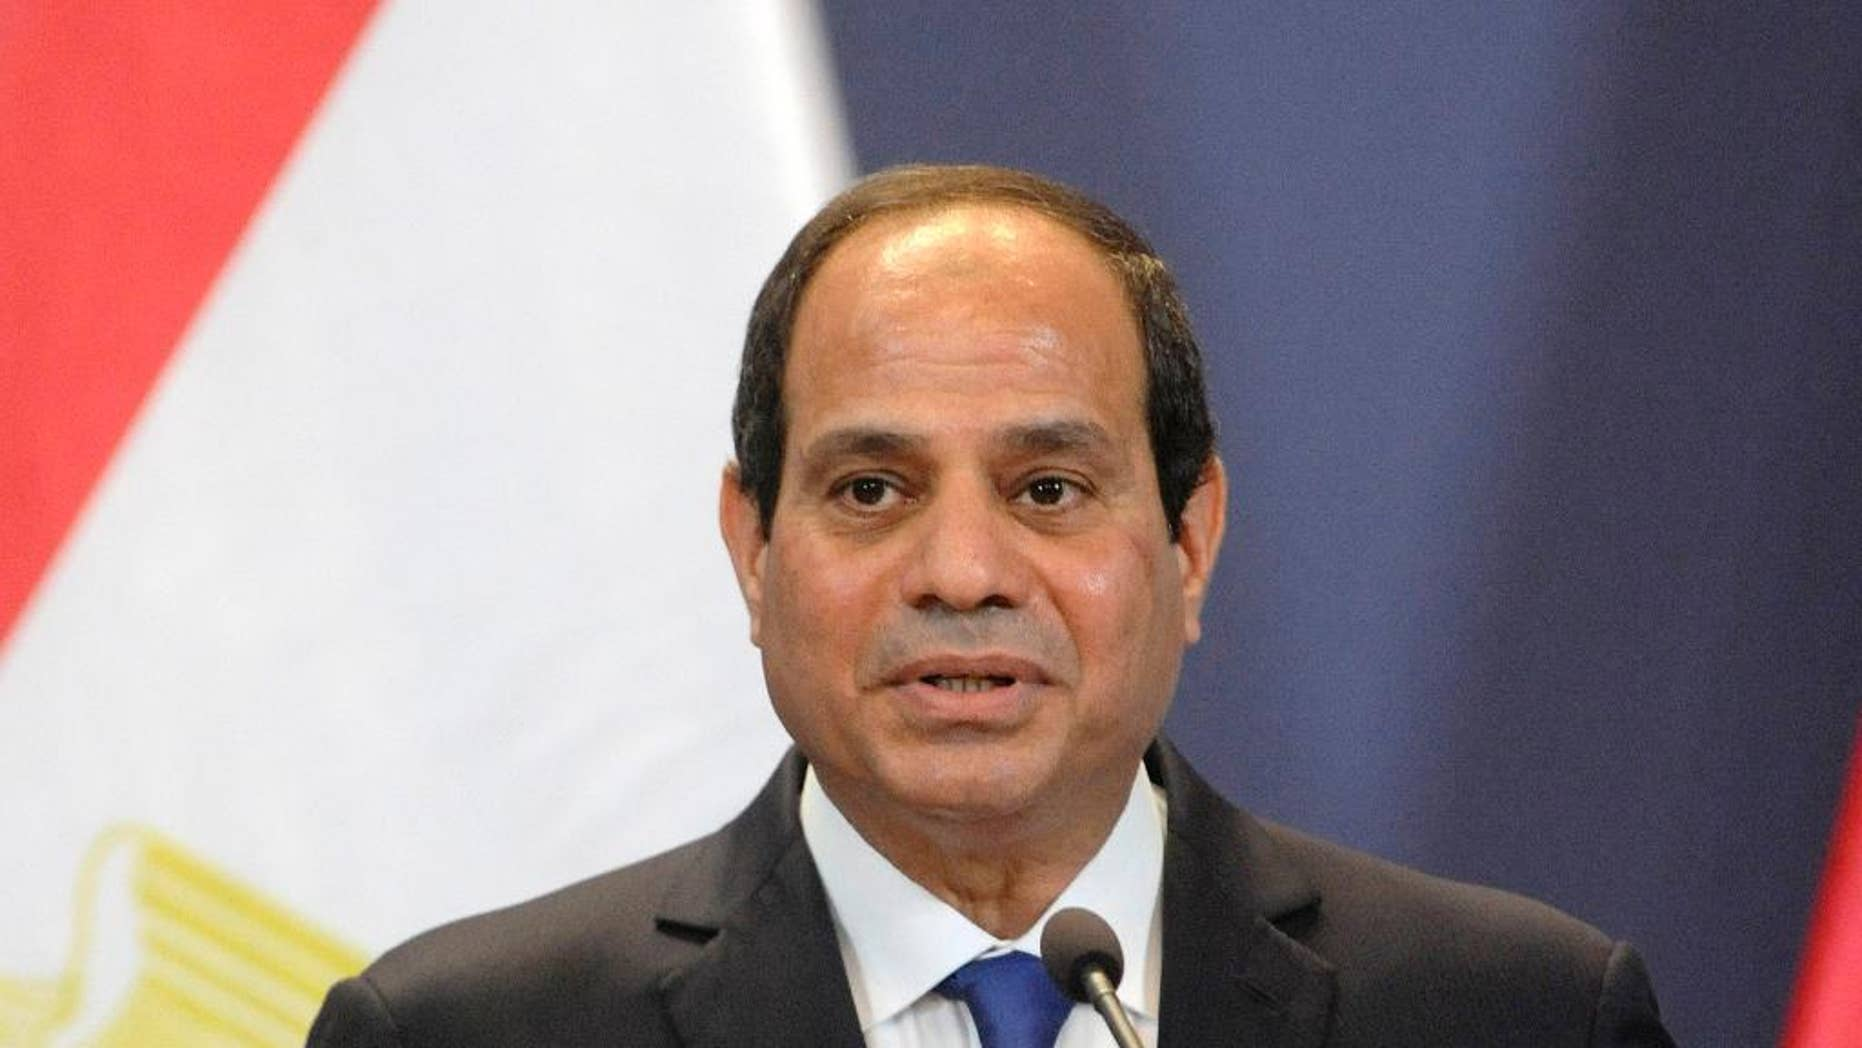 Egyptian President Abdel Fattah el-Sissi speaks during a joint press conference with Hungarian Prime Minister Viktor Orban in the Parliament building in Budapest, Hungary, Friday, June 5, 2015. El-Sissi is staying on a two-day visit in Hungary. (Zoltan Mathe/MTI via AP)